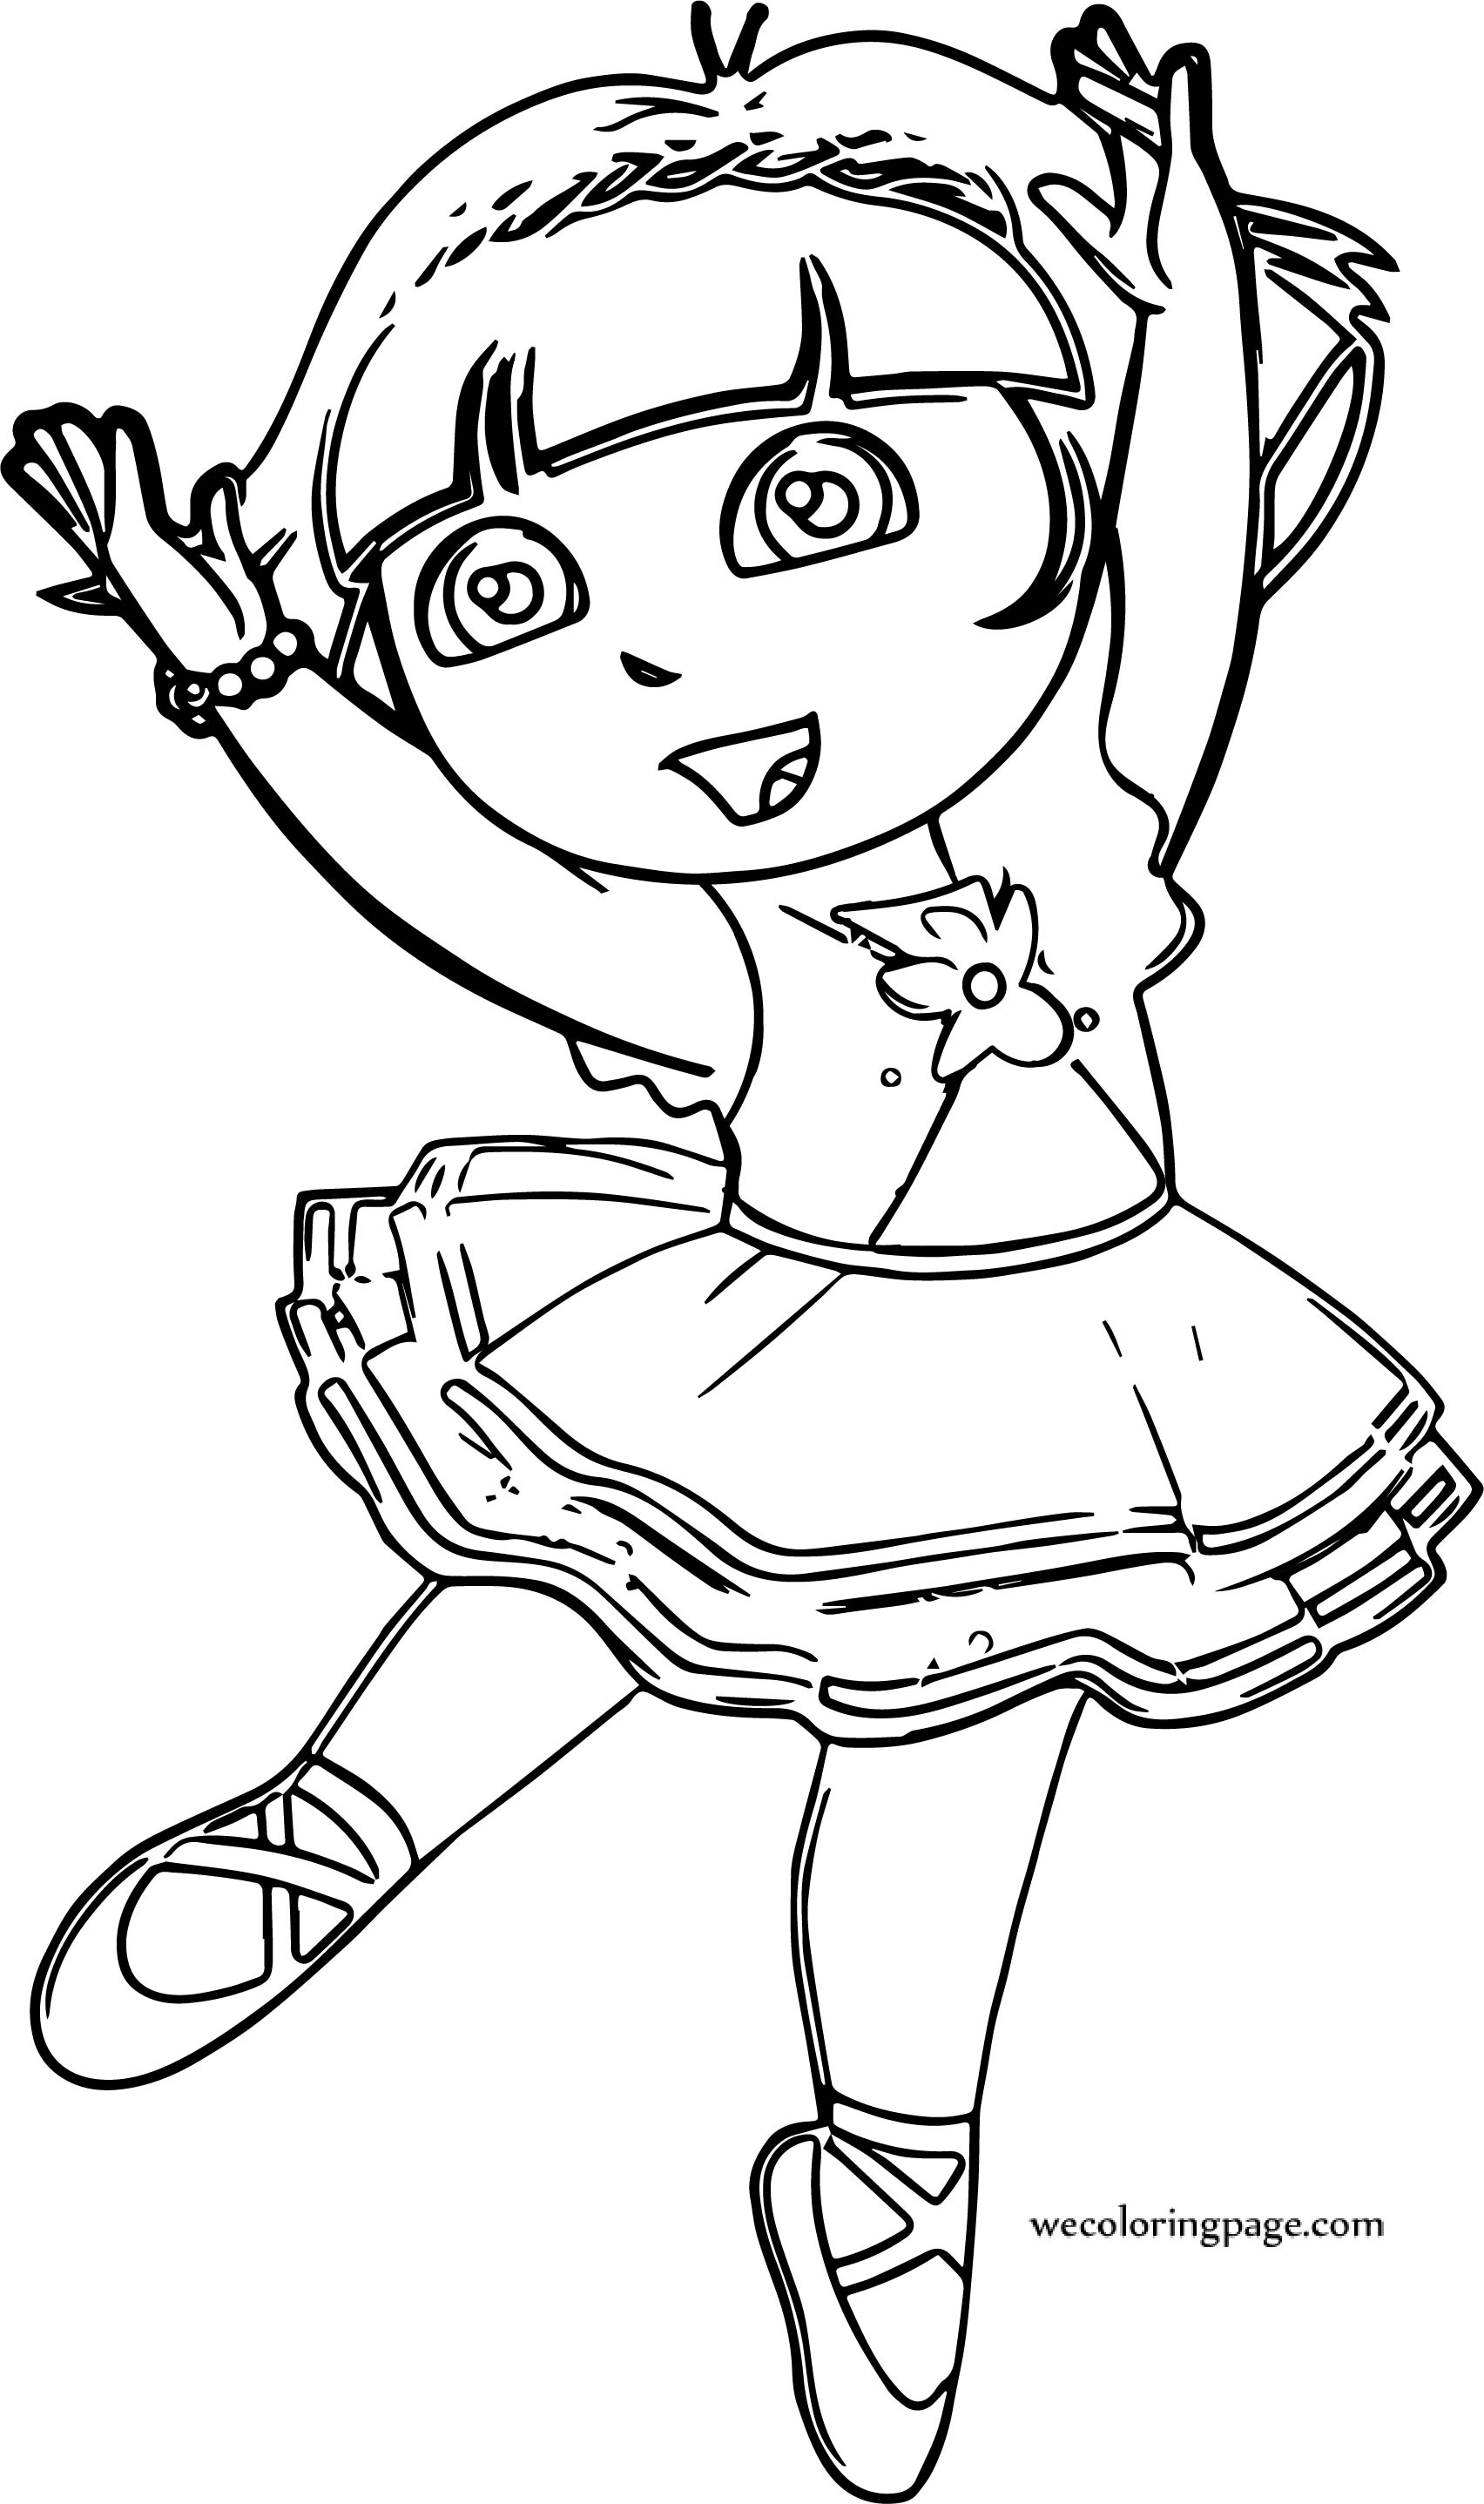 ballerina color ballerina coloring pages 360coloringpages color ballerina